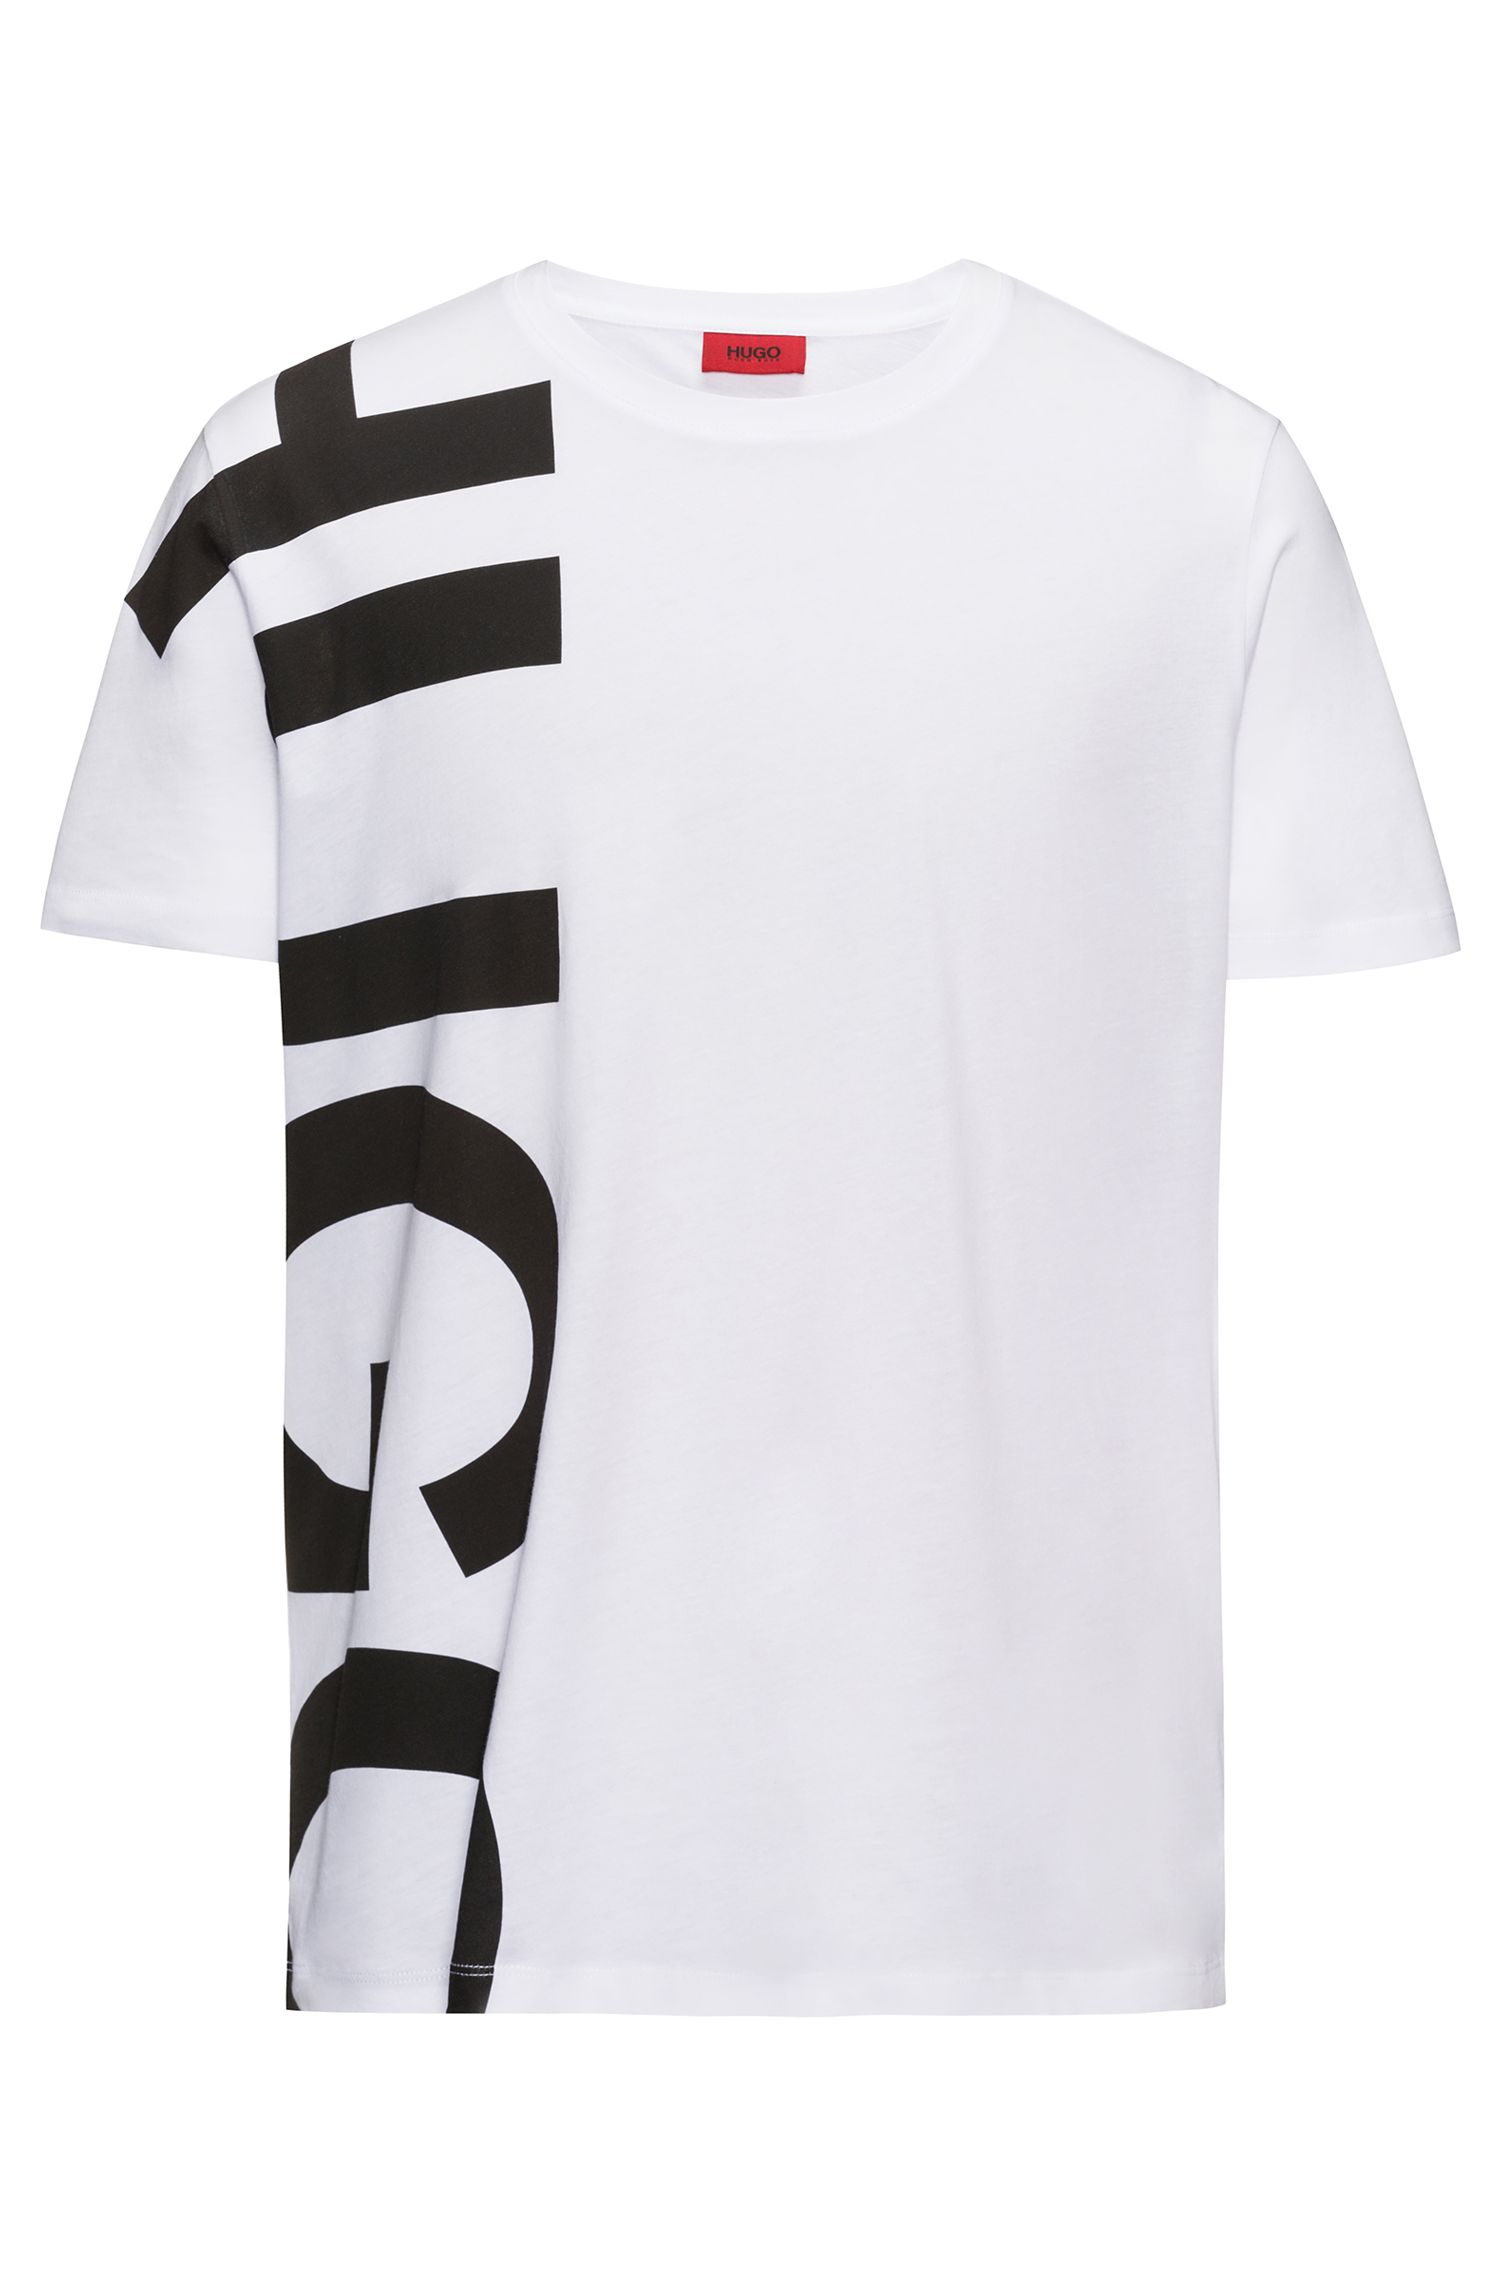 Oversized-logo T-shirt in cotton jersey